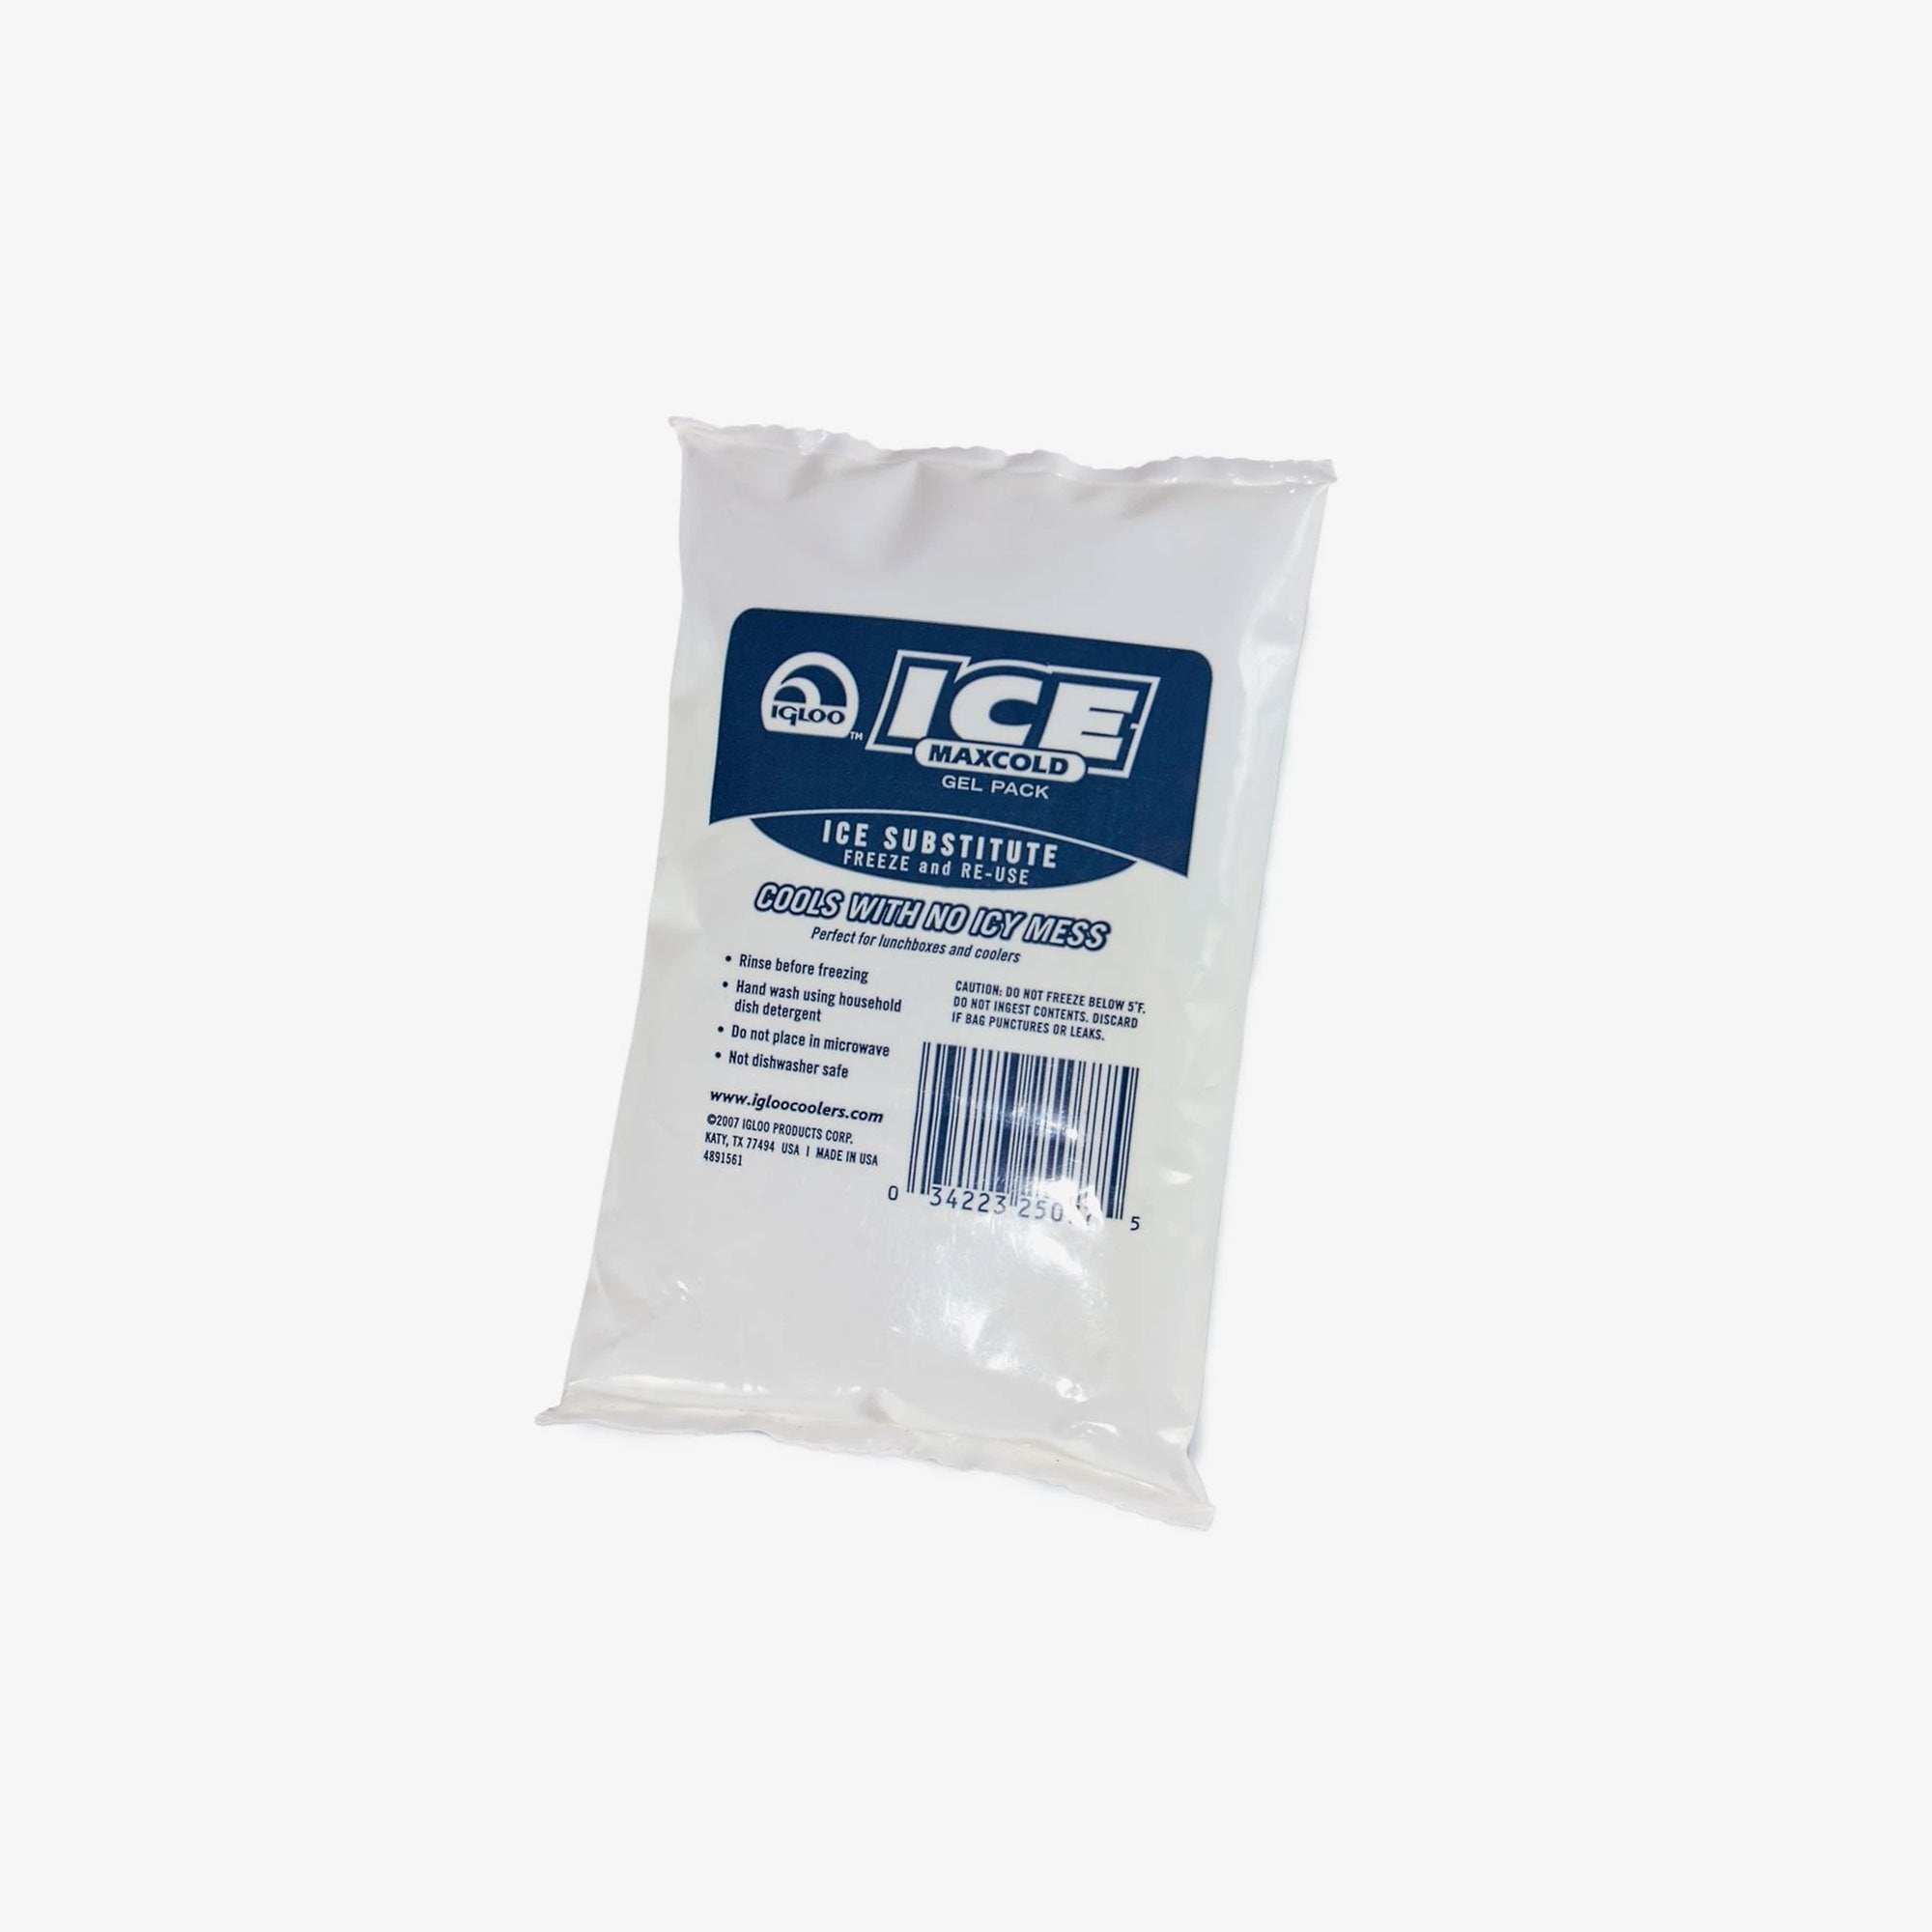 Large View | Maxcold Ice Gel Pack in White at Igloo Ice Substitutes